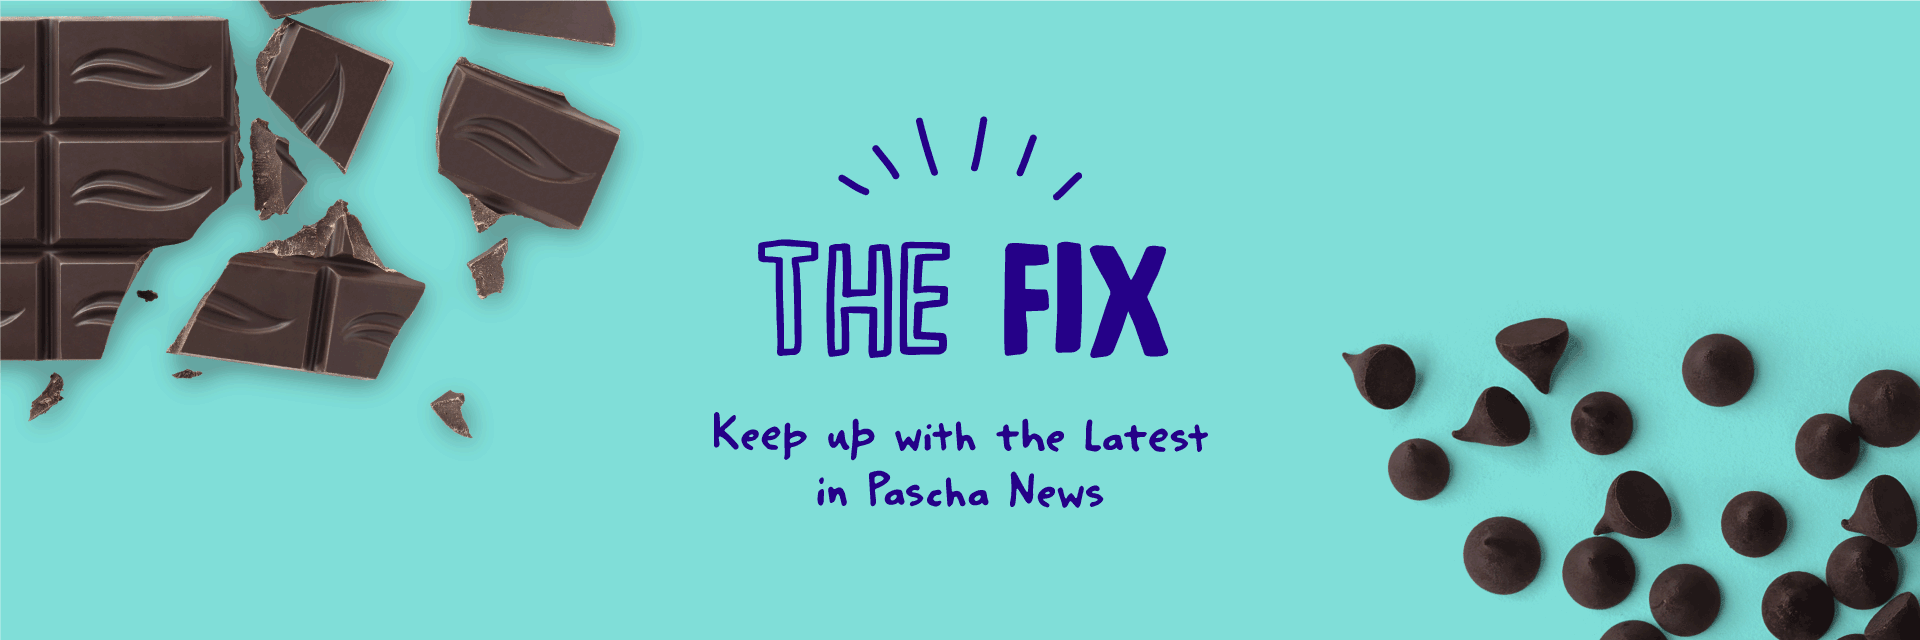 The FIX - Pascha News